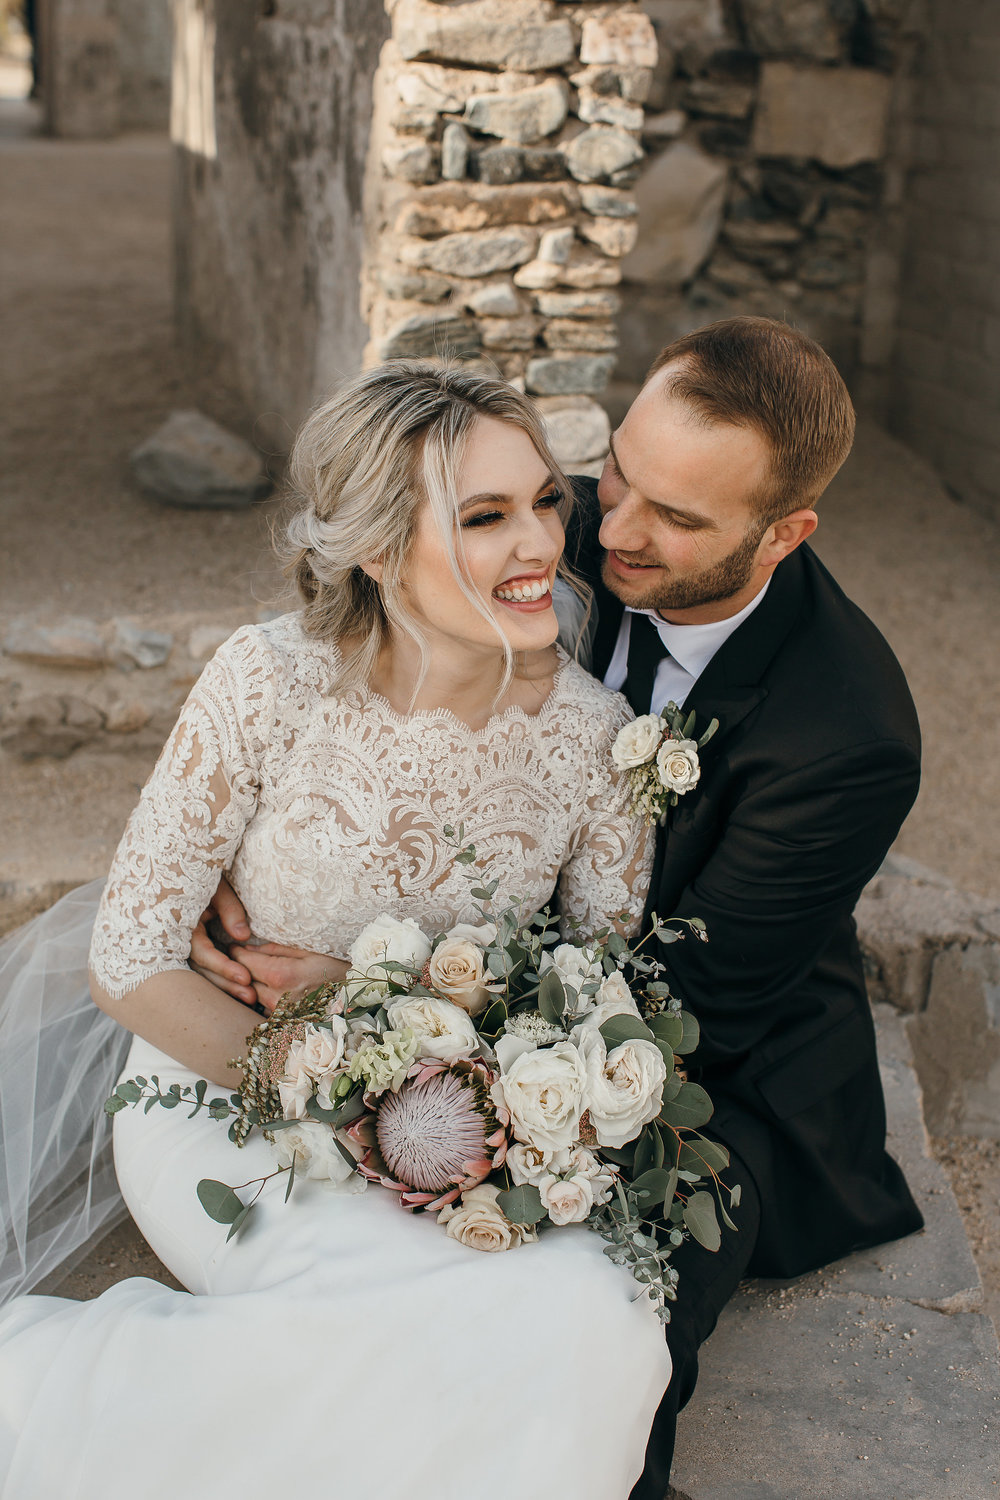 Our Brilliant Bride Alexis | South Mountain Wedding. Mobile Image